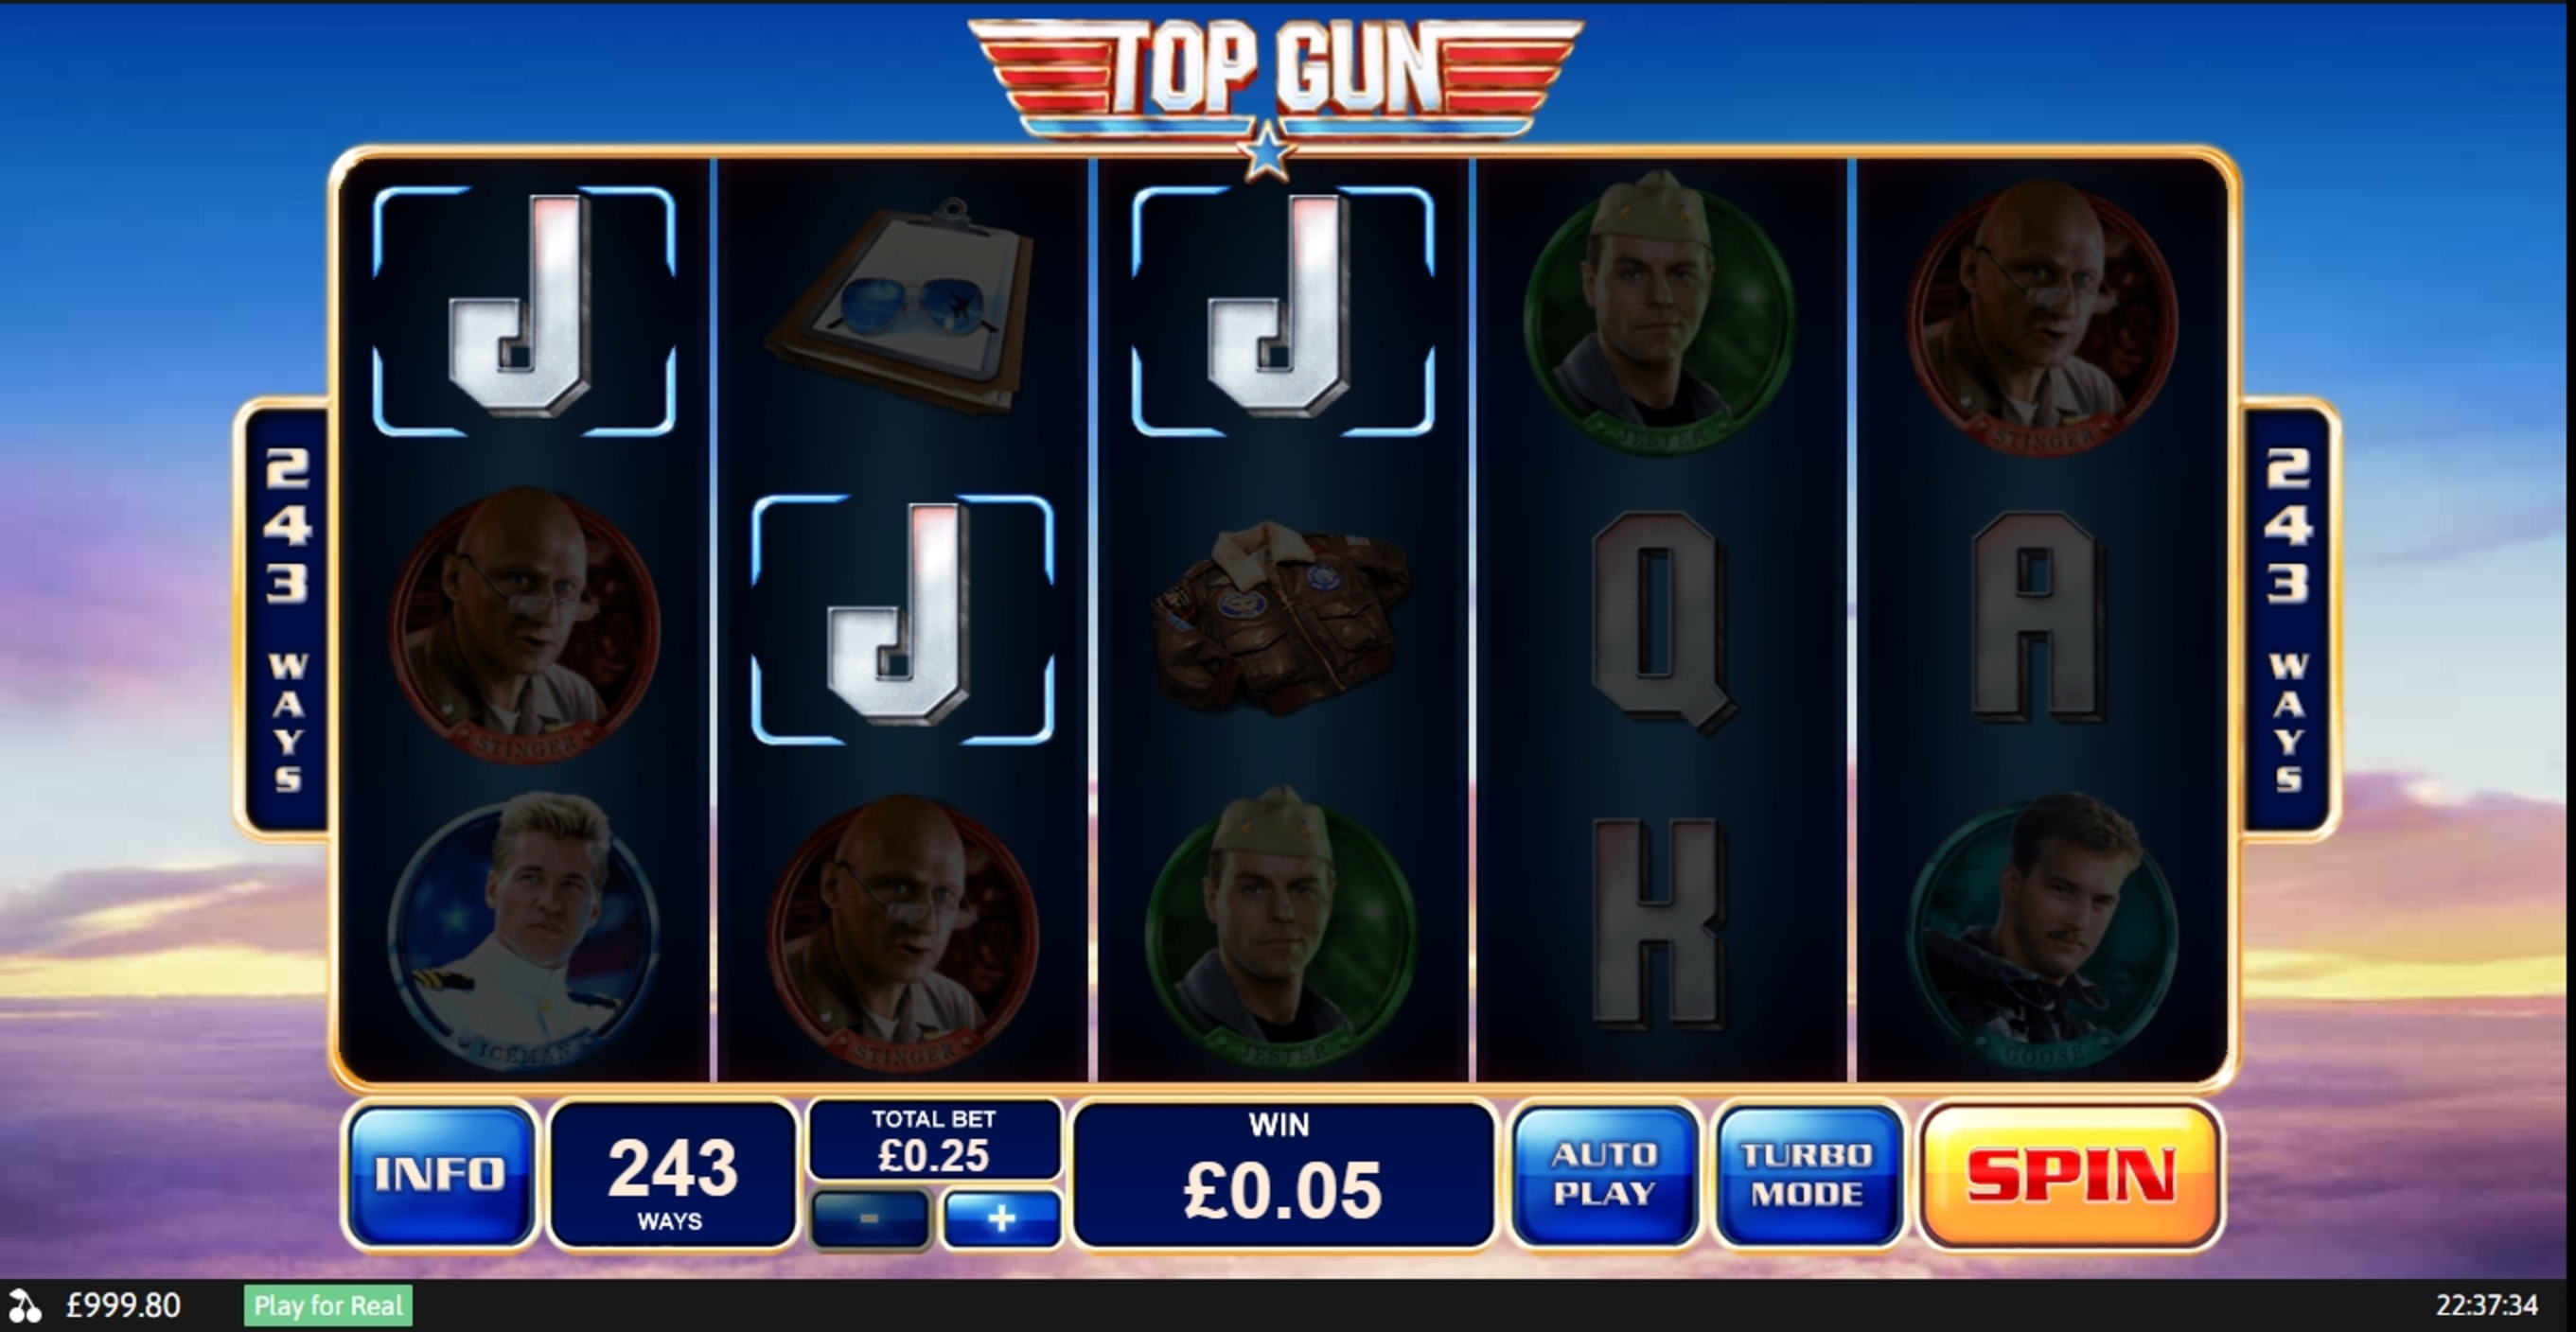 Win Money in Top Gun Free Slot Game by Playtech